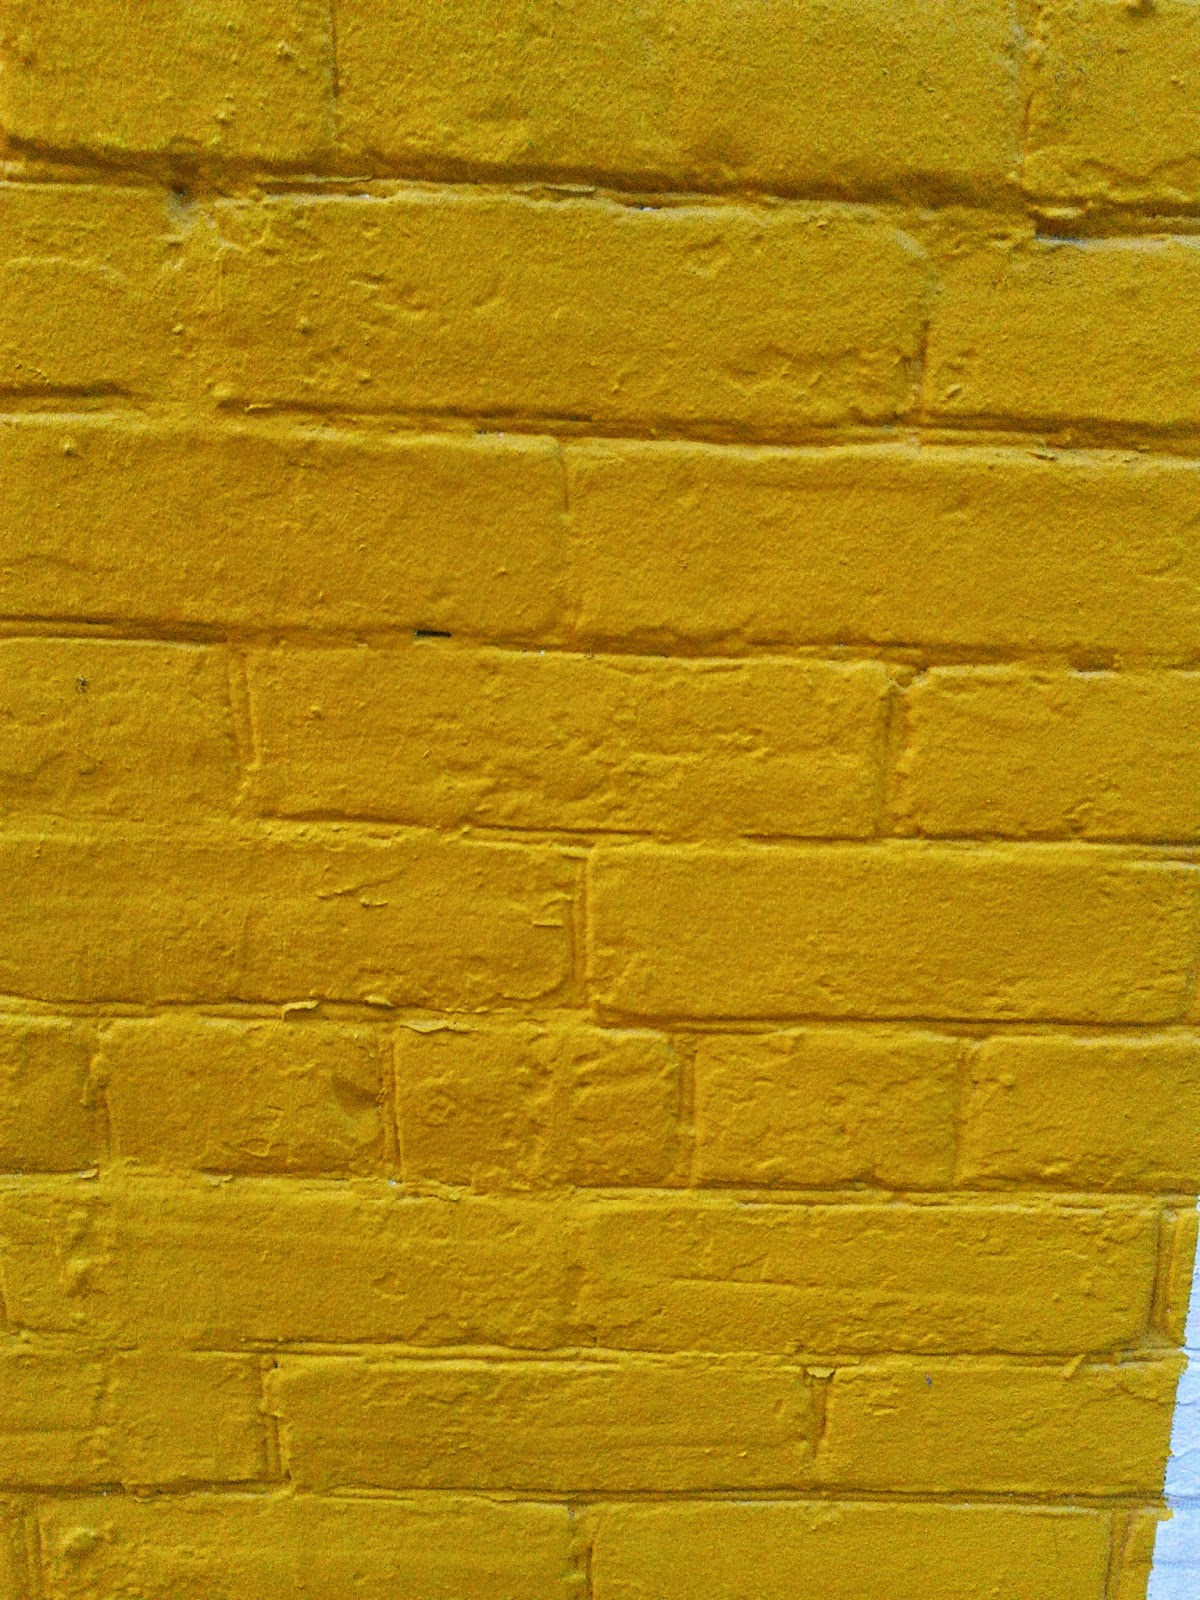 Stock photo: Yellow bricks (wall)